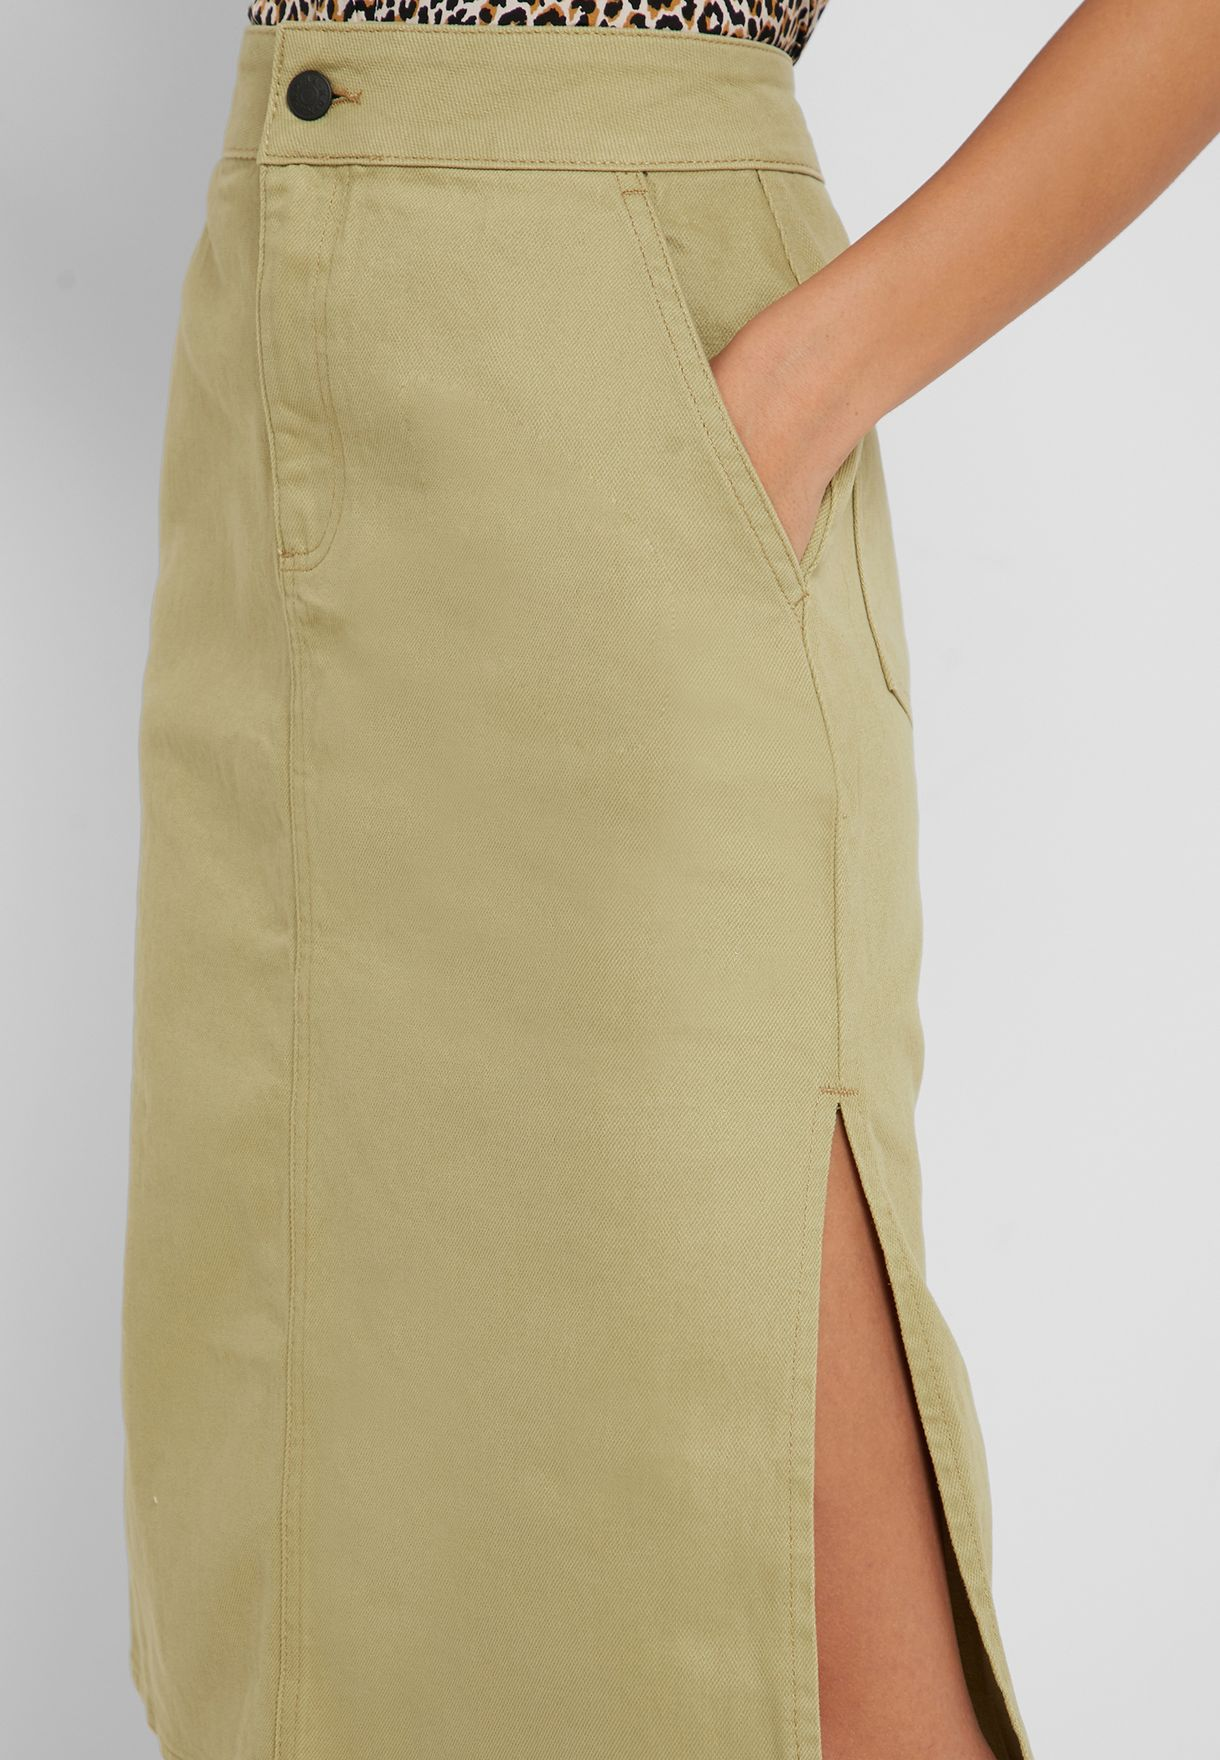 Cargo Pocket Detail Skirt